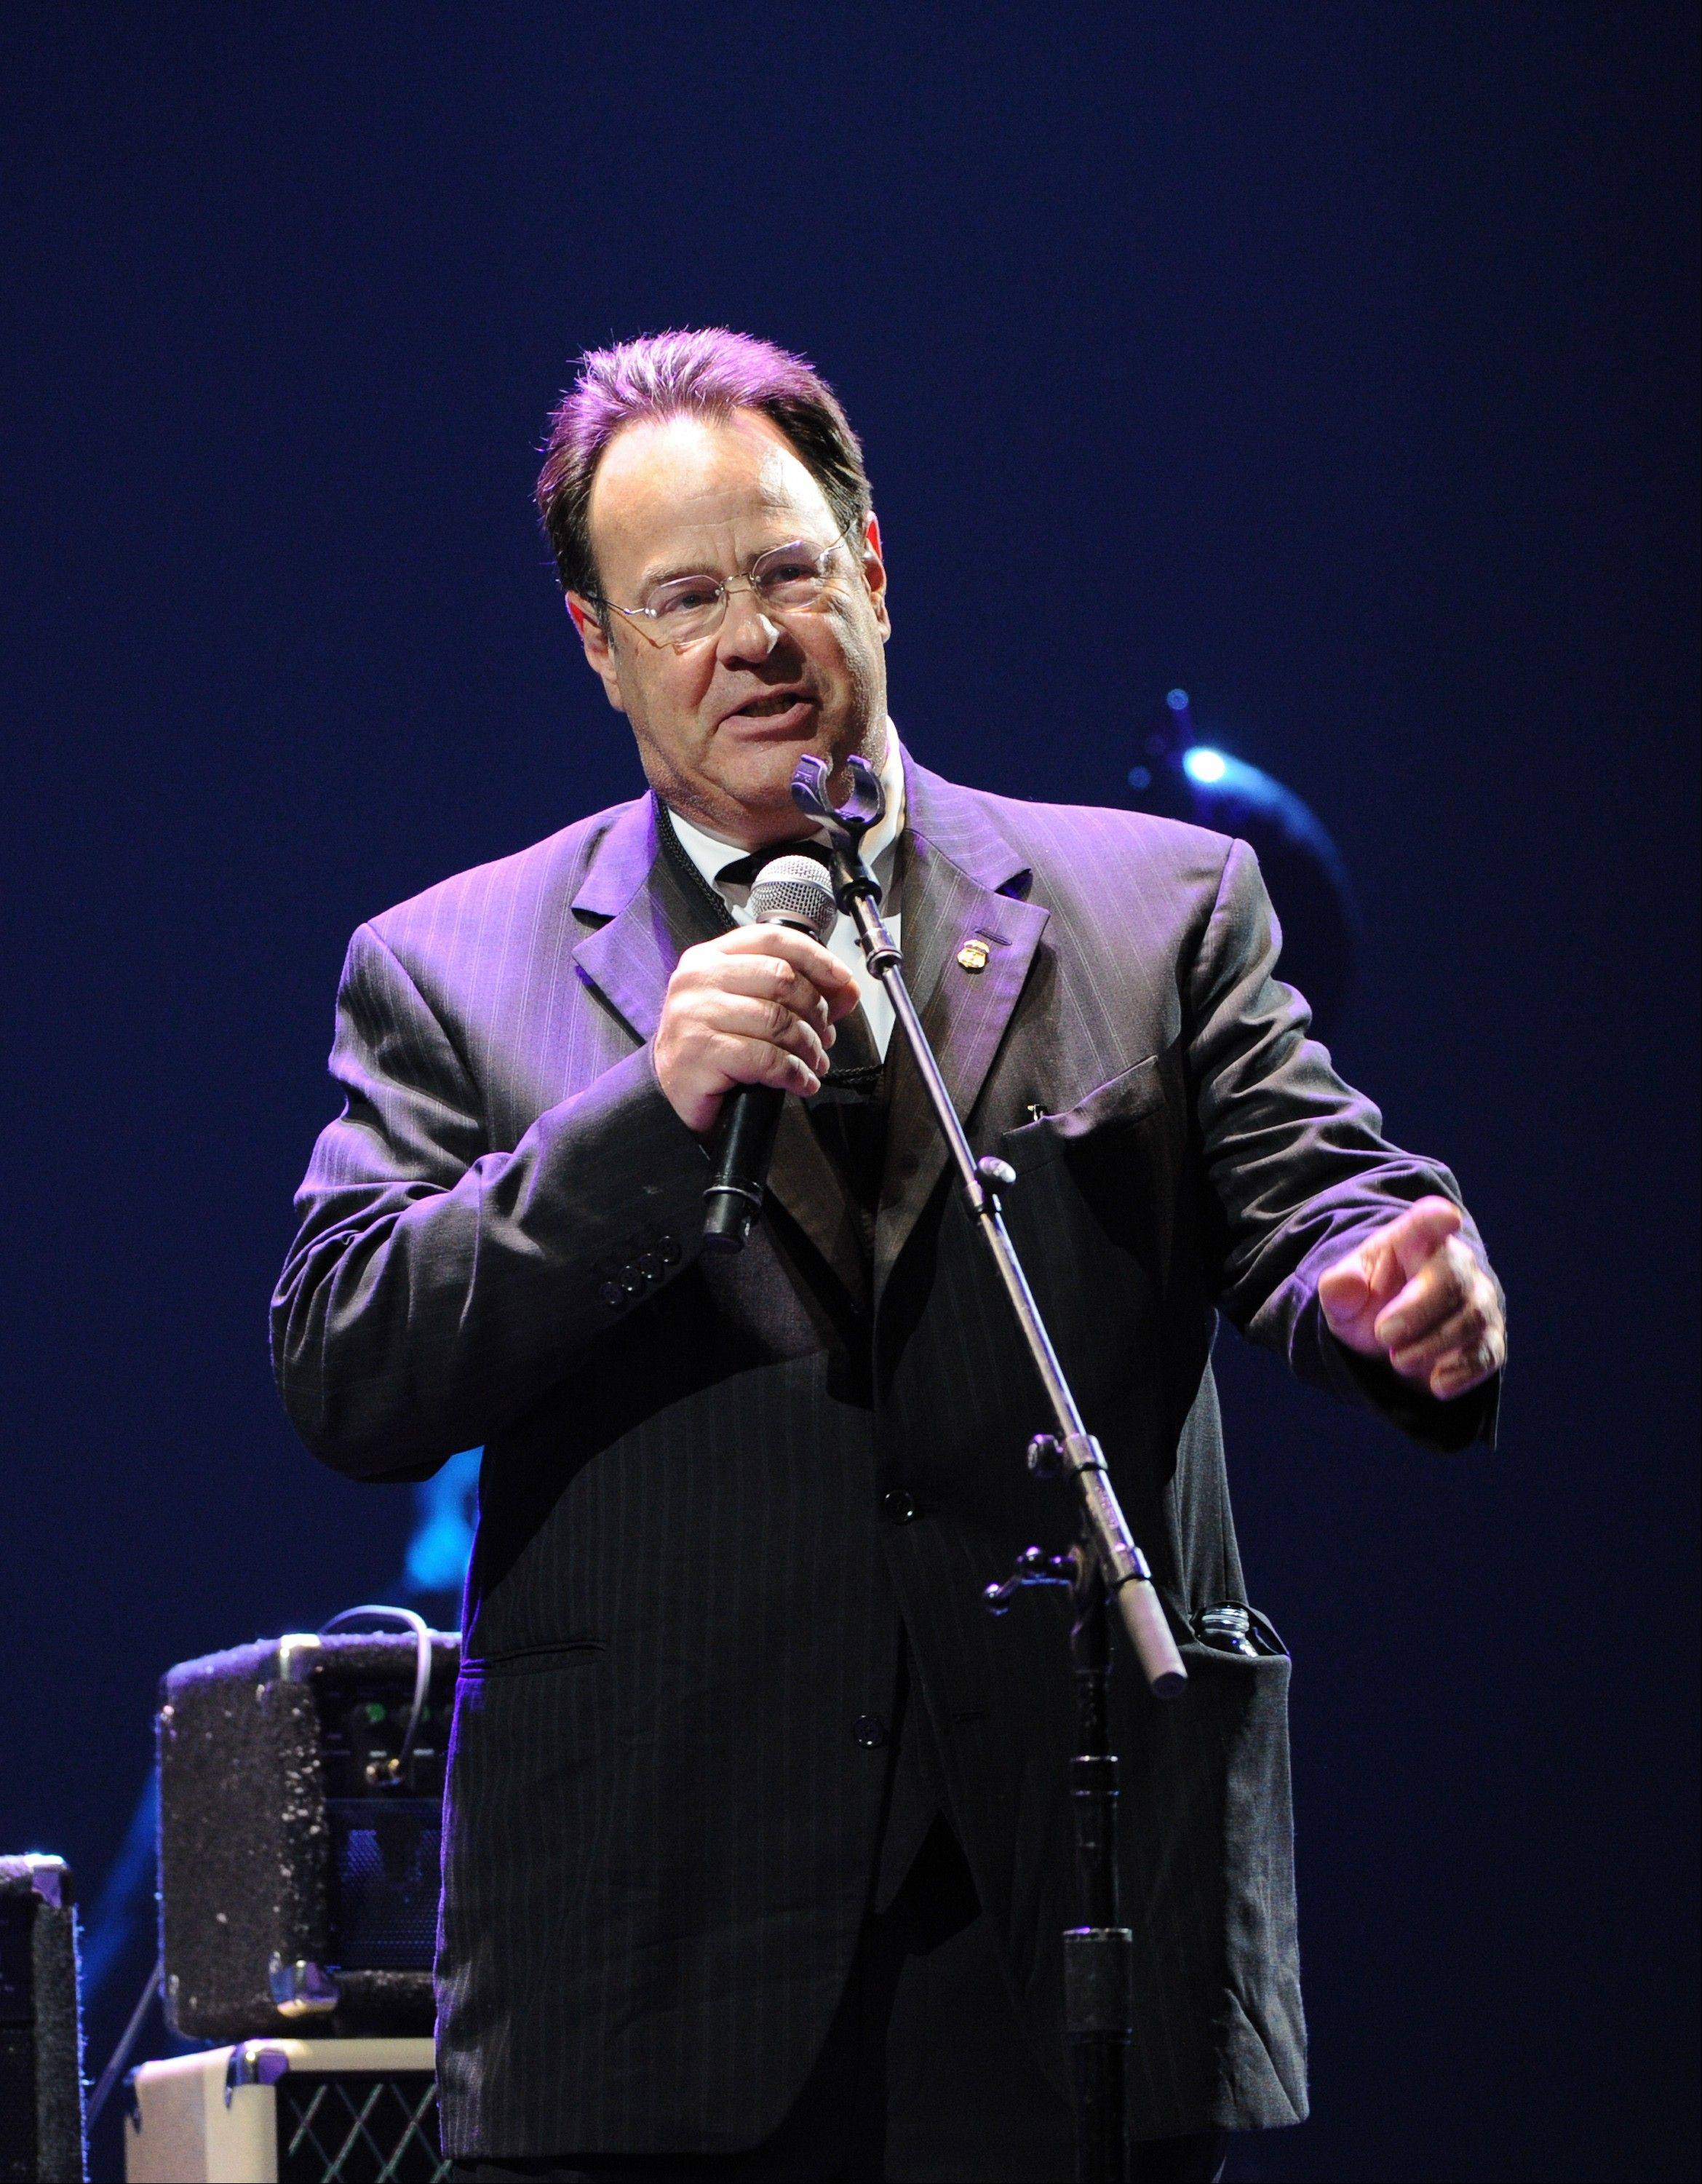 Actor and musician Dan Aykroyd serves as MC at Eric Clapton's Crossroads Guitar Festival 2013 at Madison Square Garden on Friday.